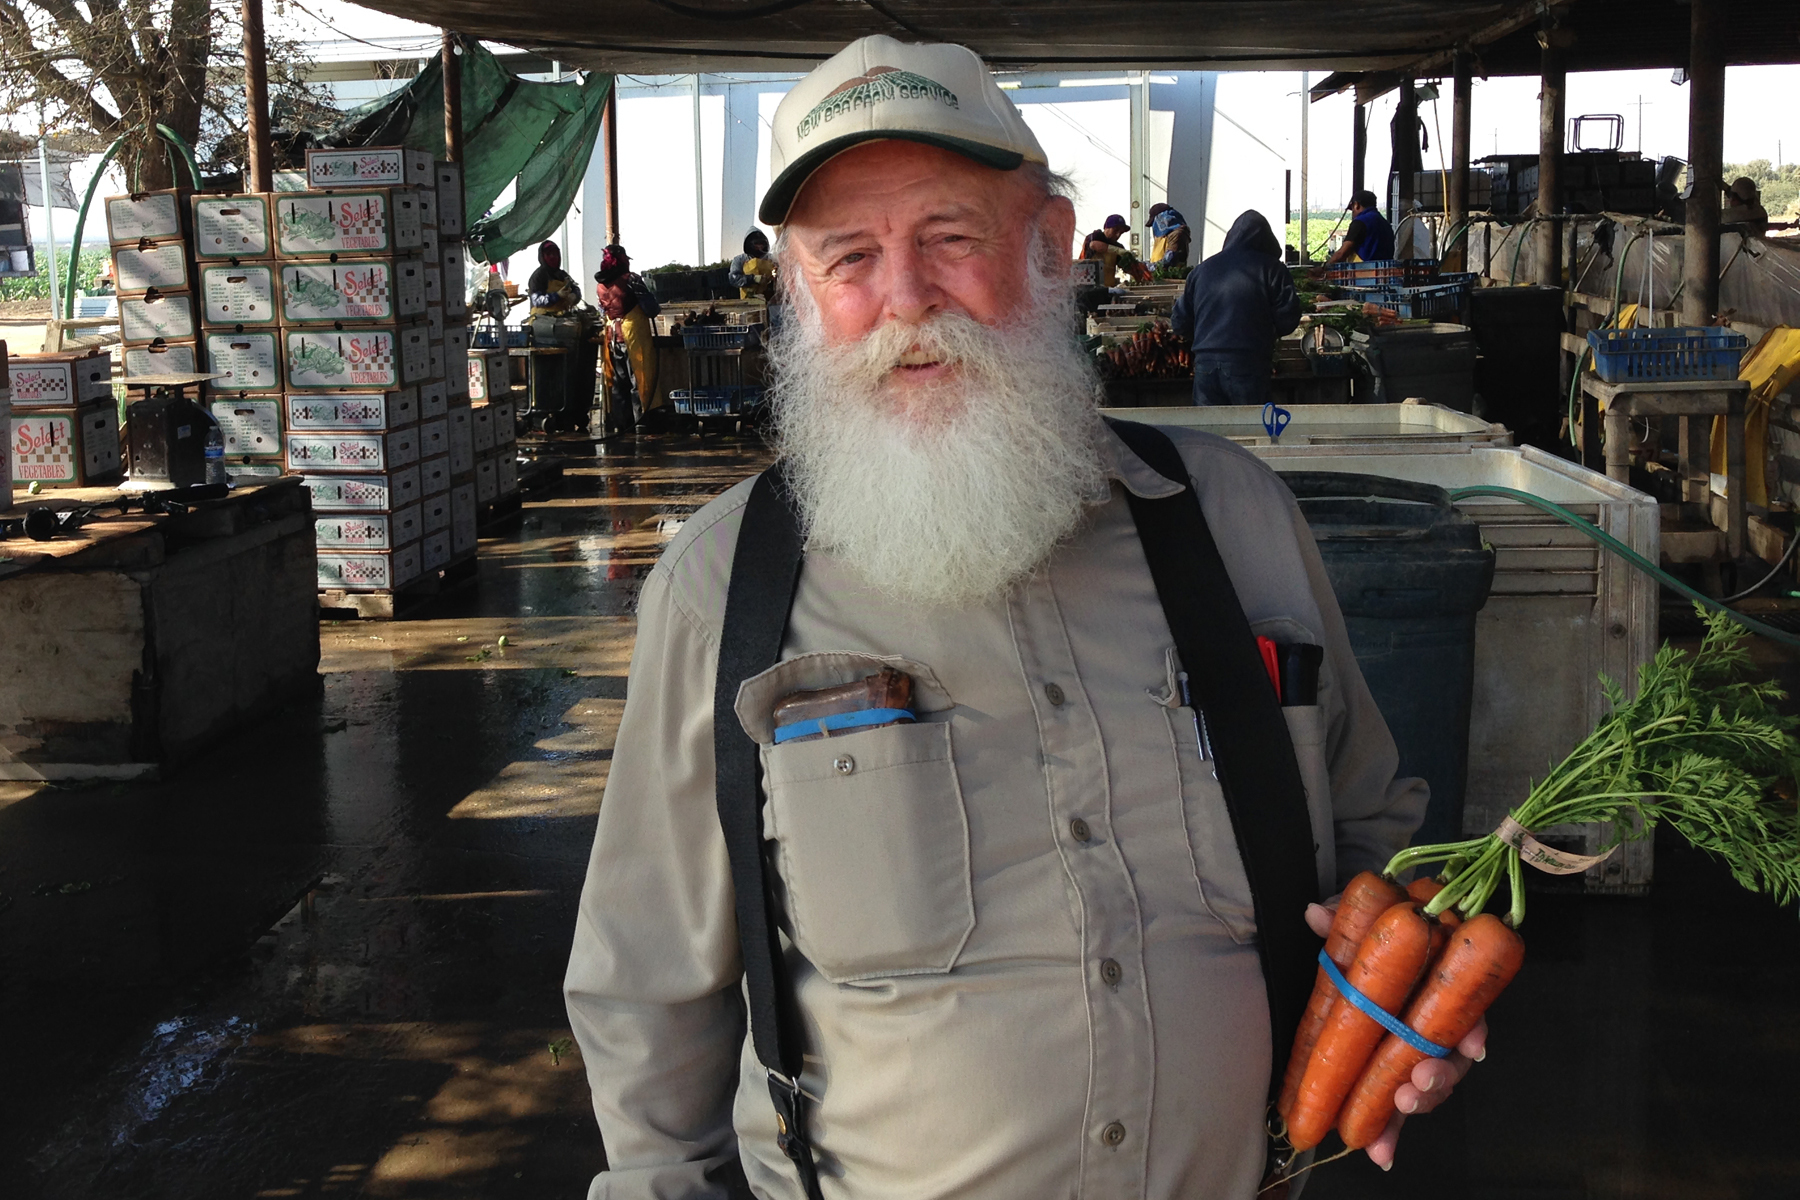 Tom Willey grows a big variety of organic vegetables near Madera, Calif., and employs about 50 people year-round. Photo: Dan Charles/NPR